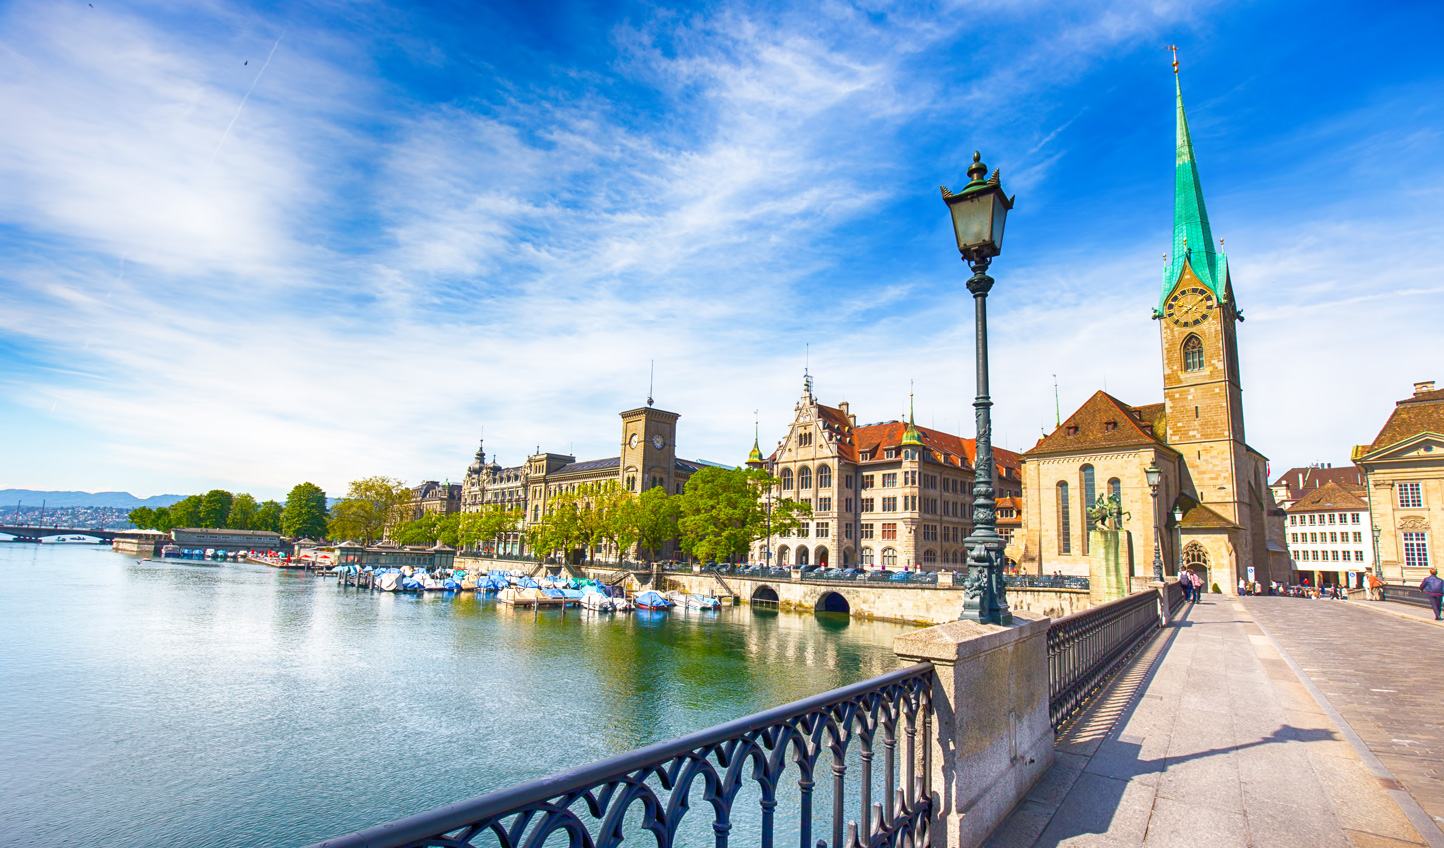 Discover Zurich's ancient history and modern culture